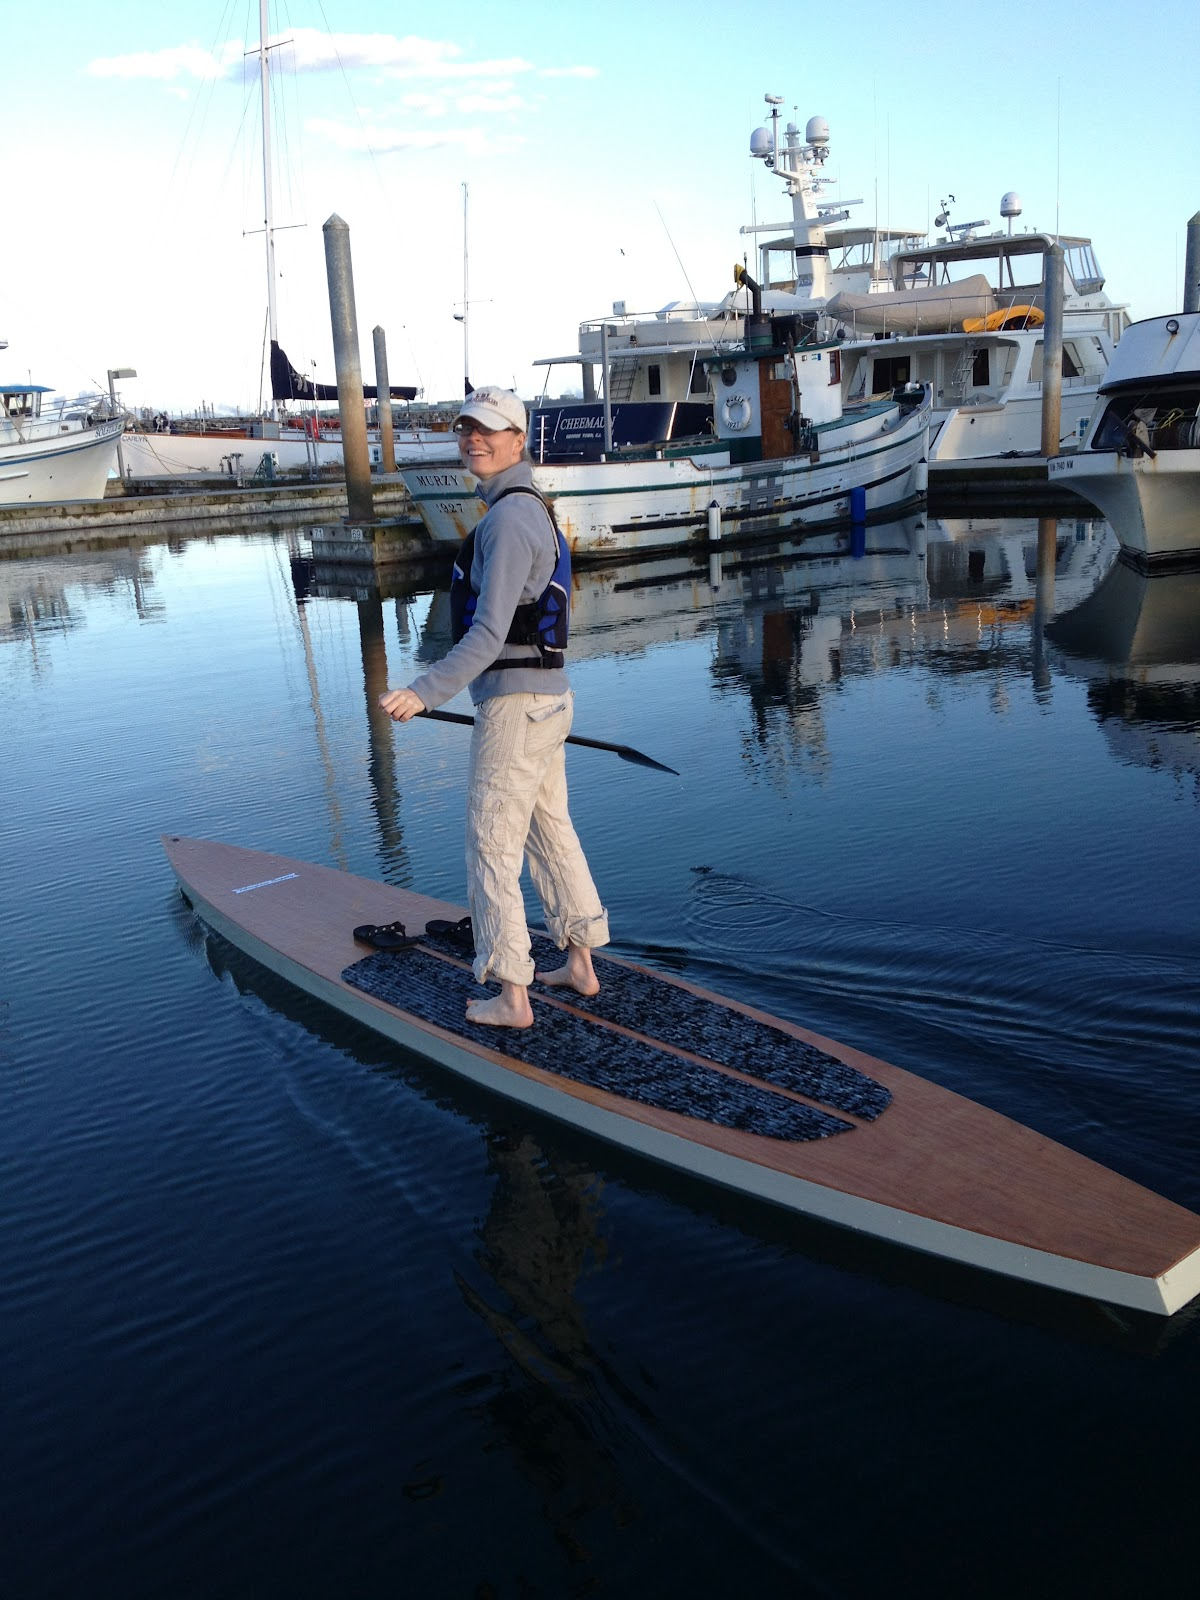 April Paddleboarding on the 14' Paddleboard | Itching For Fun